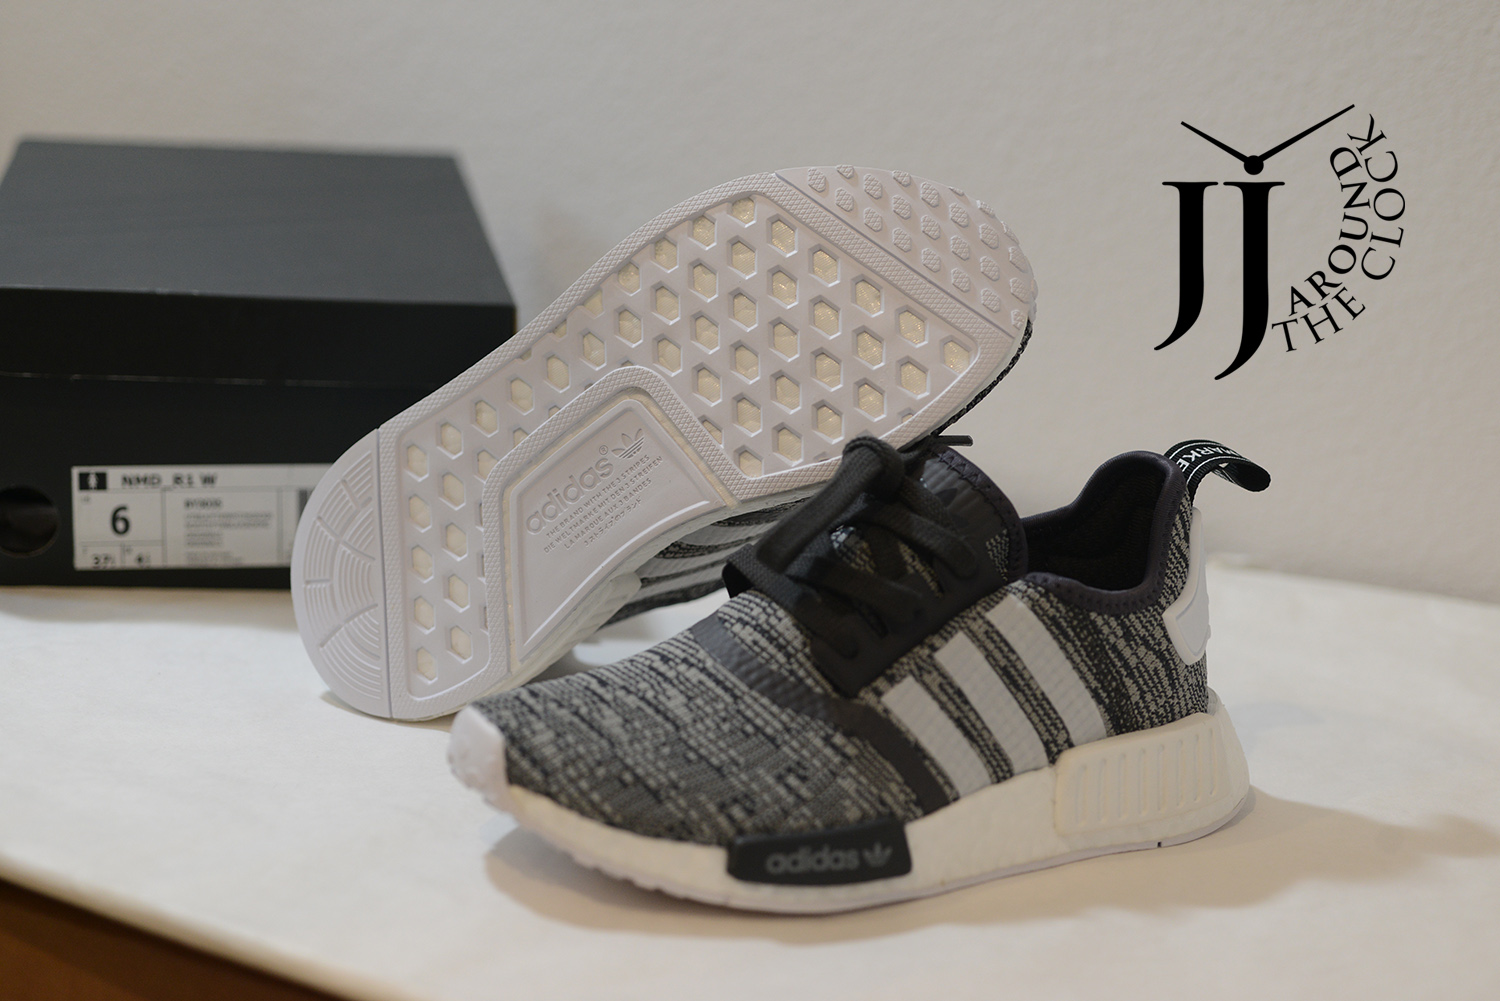 3dfb8c46d10cd coupon adidas nmd r1 midnight grey c5c9a d2002  shopping adidas nmd r1  primeknit in core black solid grey up for sale 2ea50 a4582